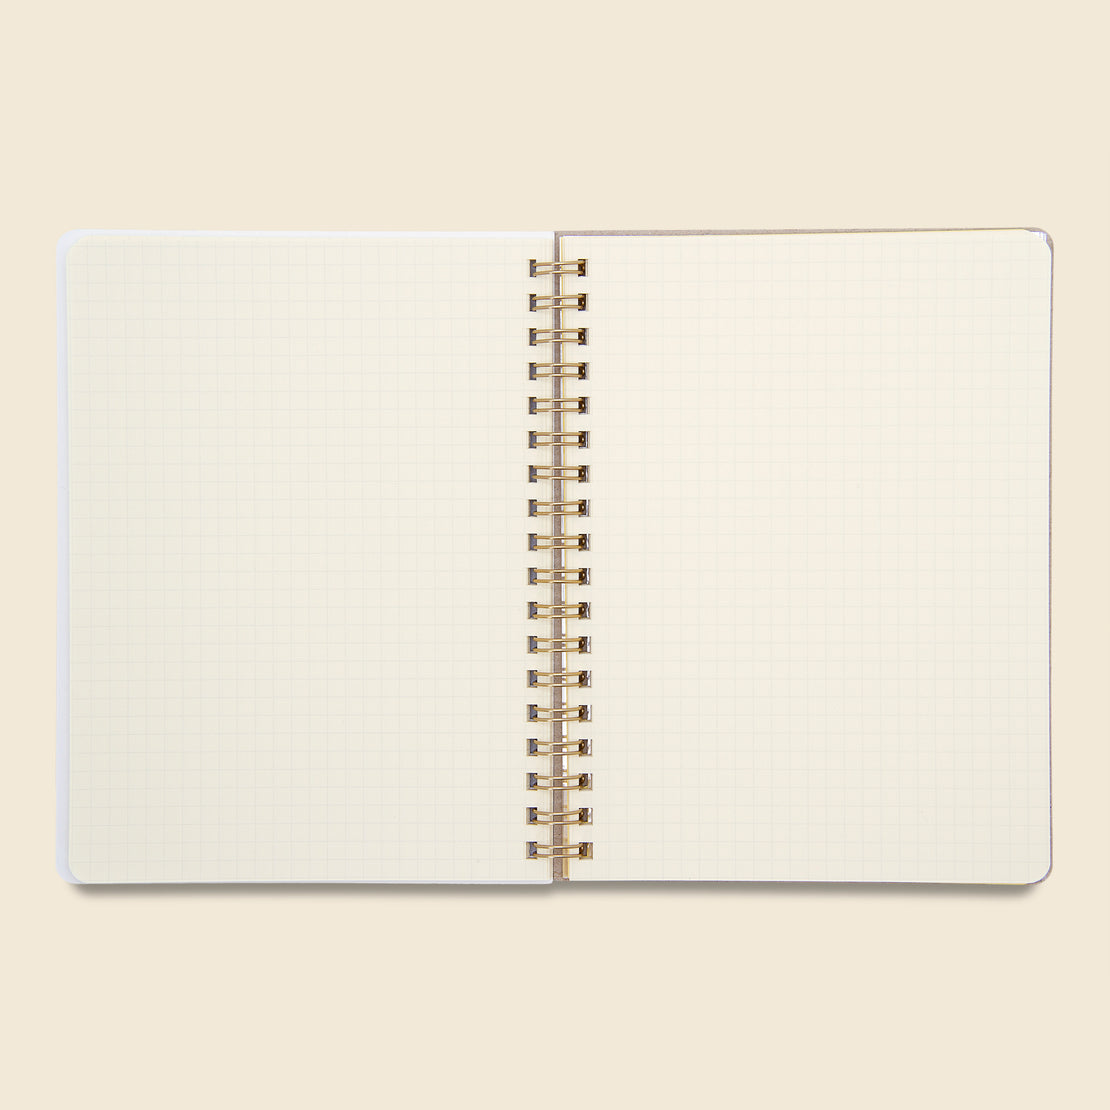 Rollbahn Spiral Notebook - Beige/Orange